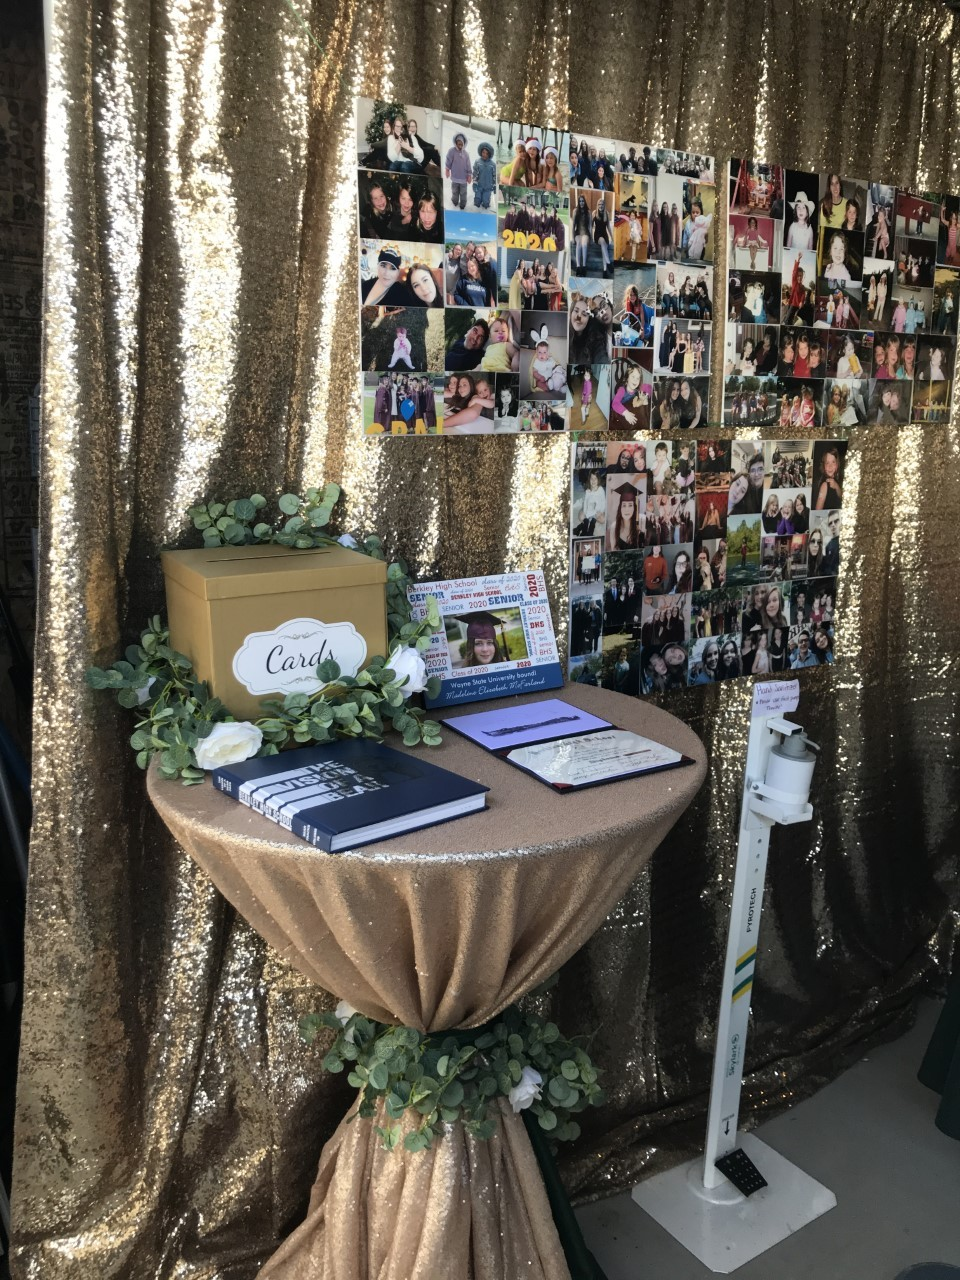 high school graduation party memory table